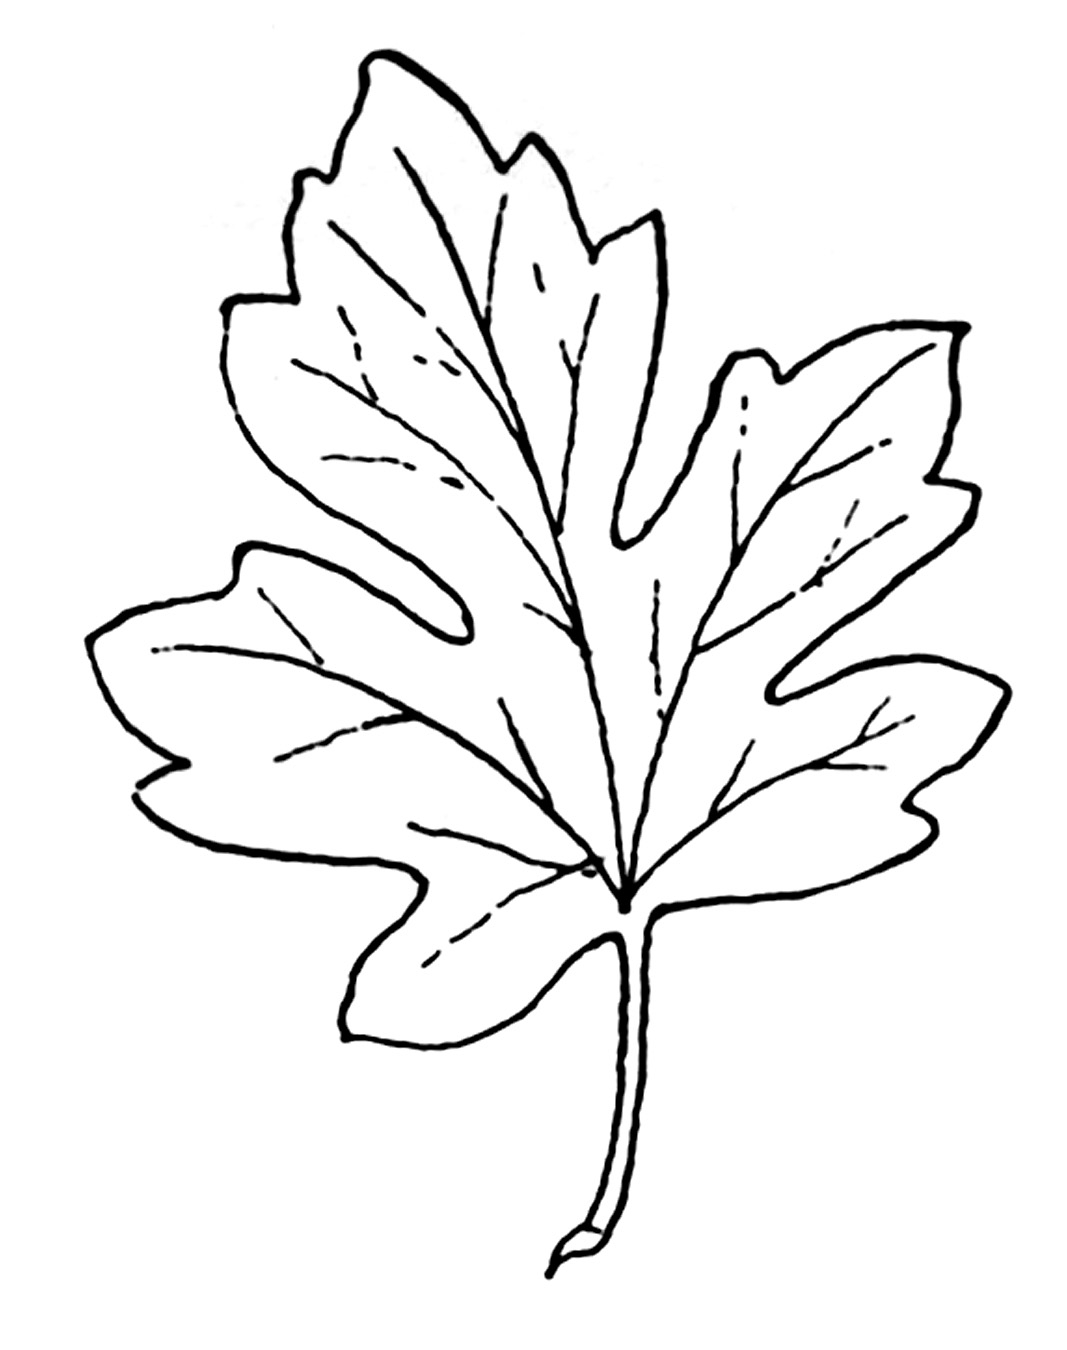 Fall Leaves Clipart Black And-fall leaves clipart black and-5